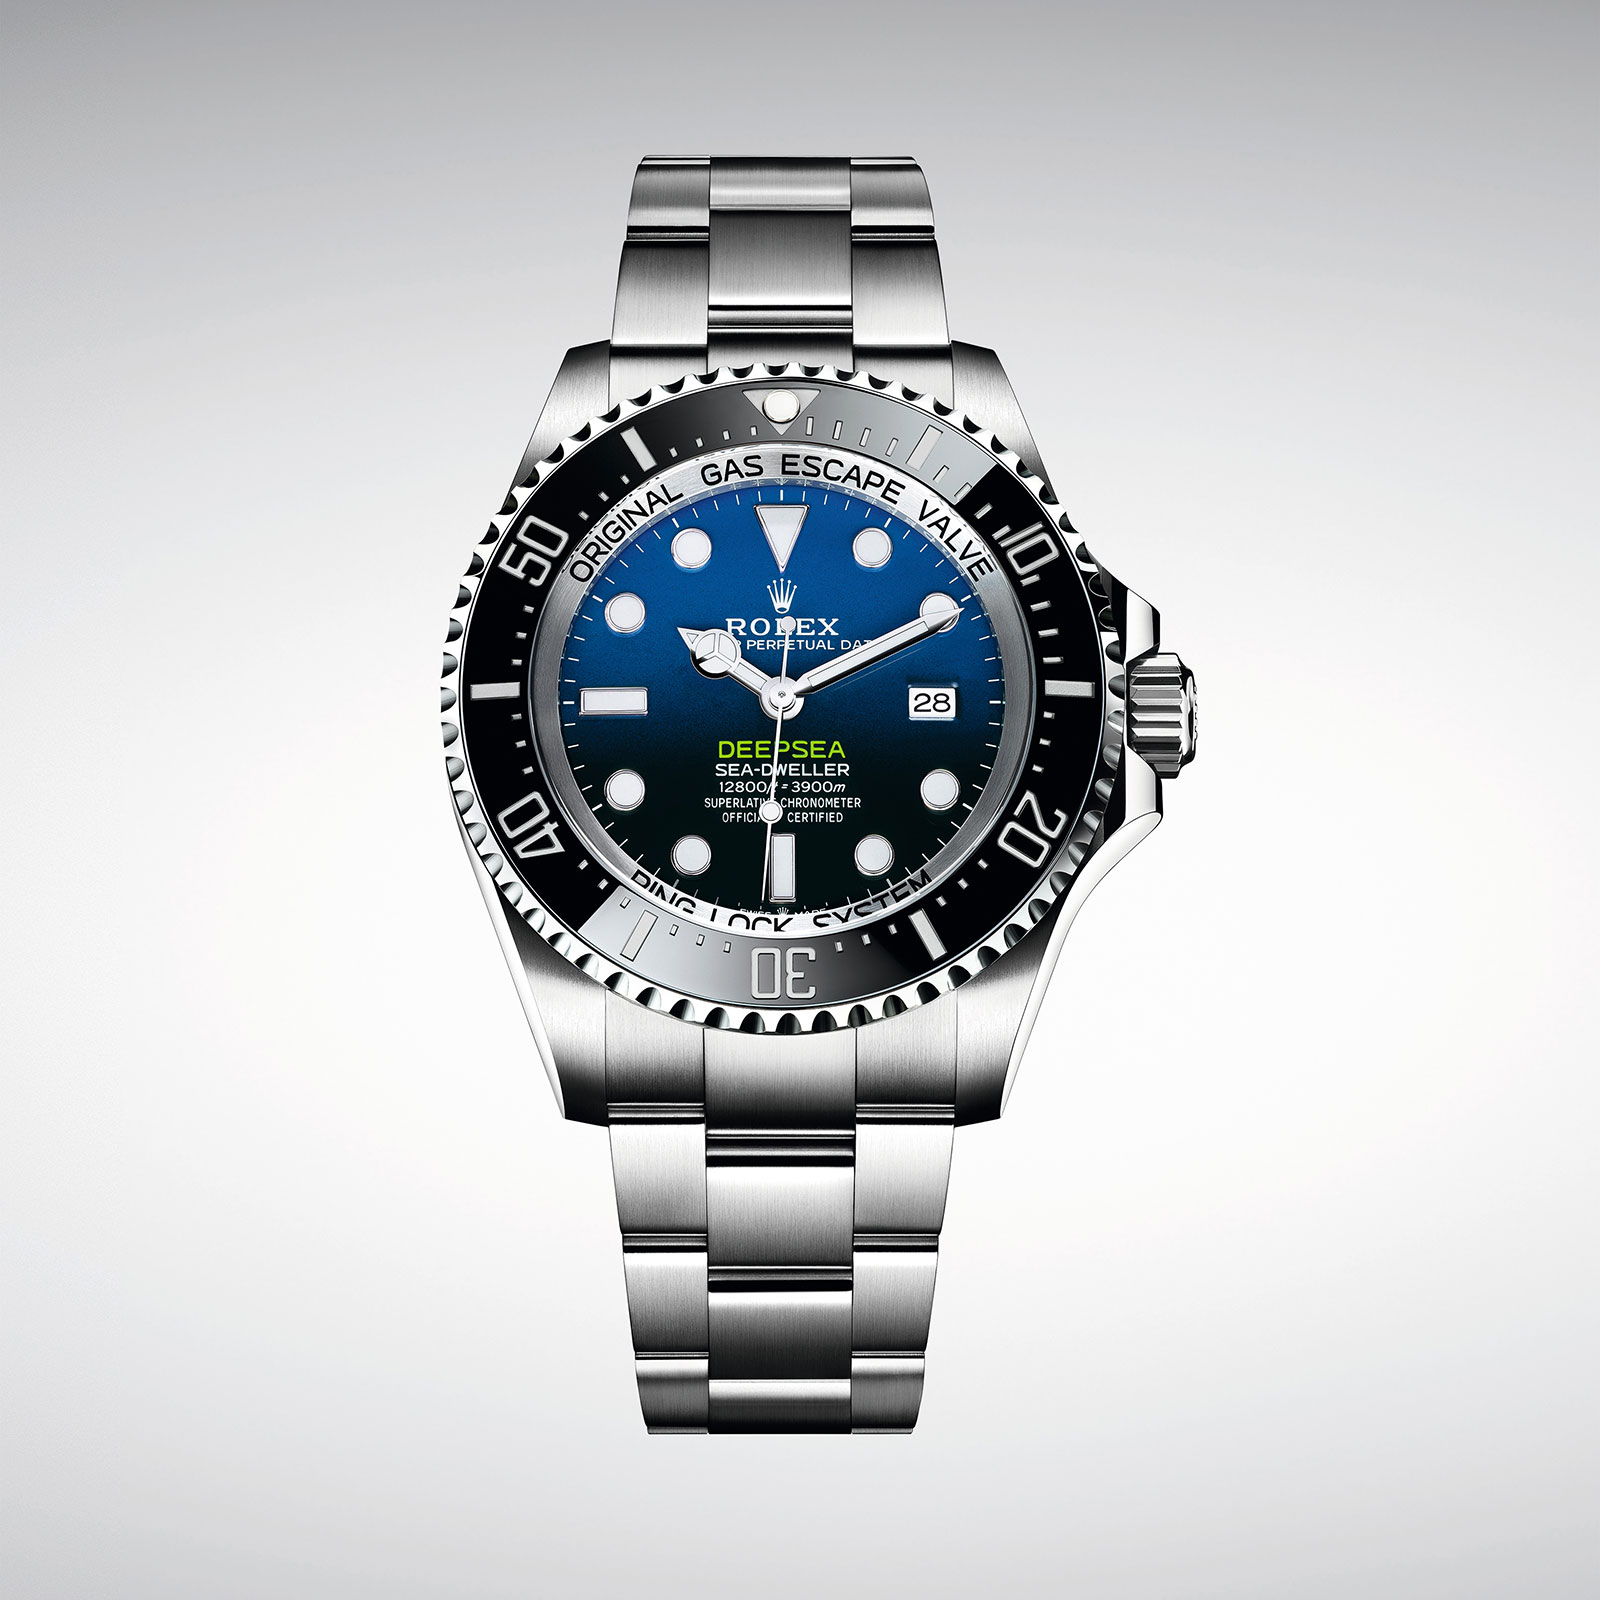 Baselworld 2018 Rolex Introduces The Revamped Deepsea Sea